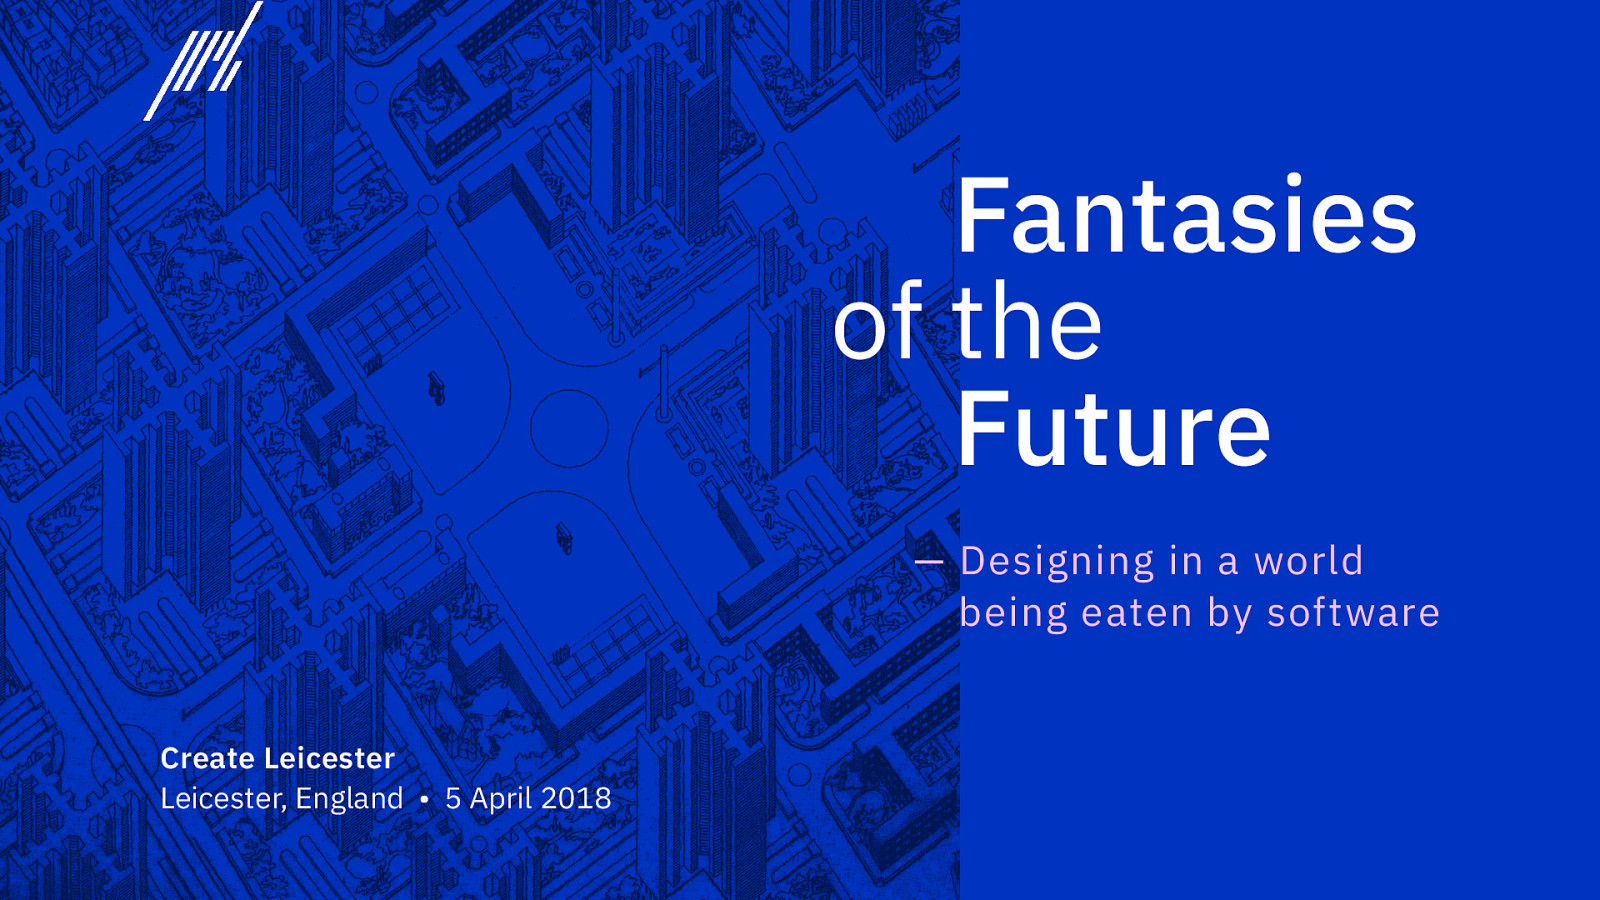 Fantasies of the Future: Design in a World Being Eaten by Software